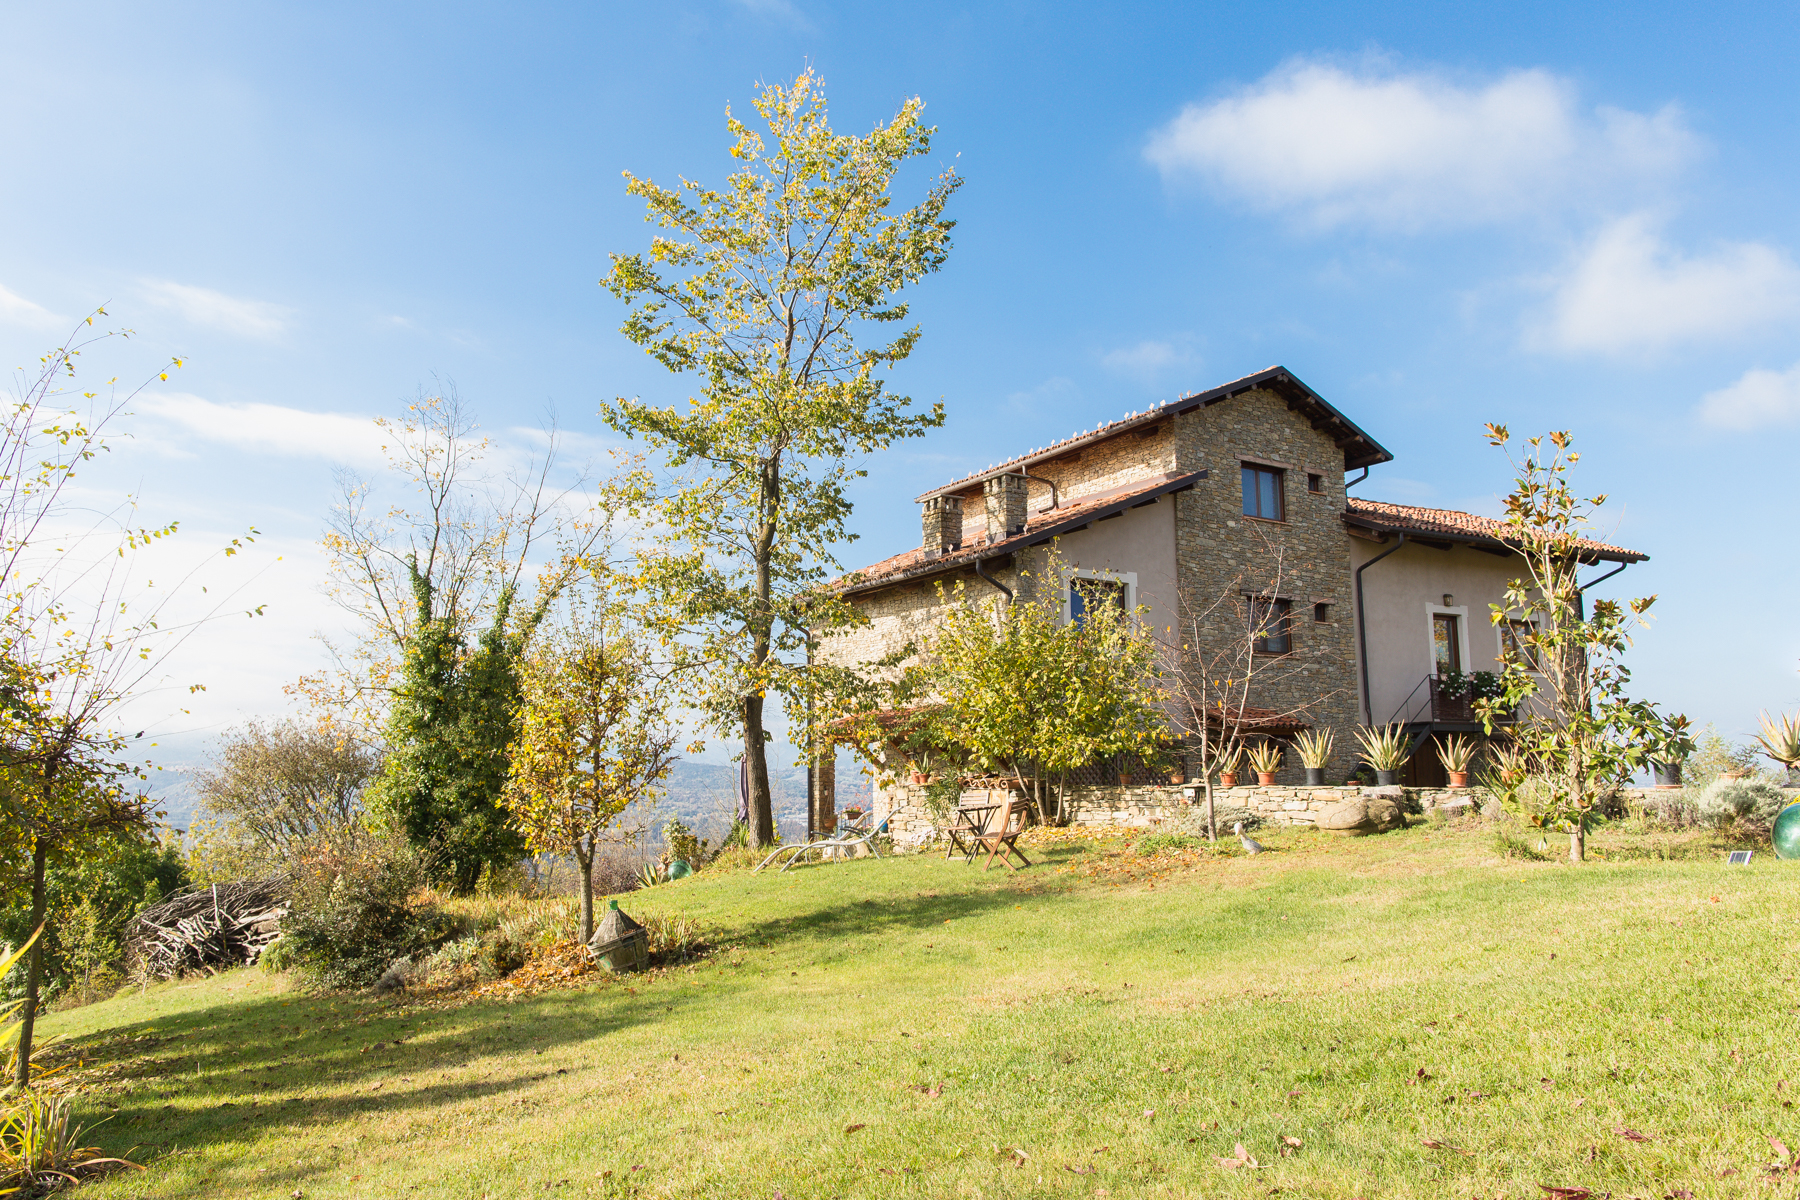 Single Family Home for Sale at Cozy Country Home overlooking the Langhe Località Monaca Castellino Tanaro, Cuneo 12060 Italy